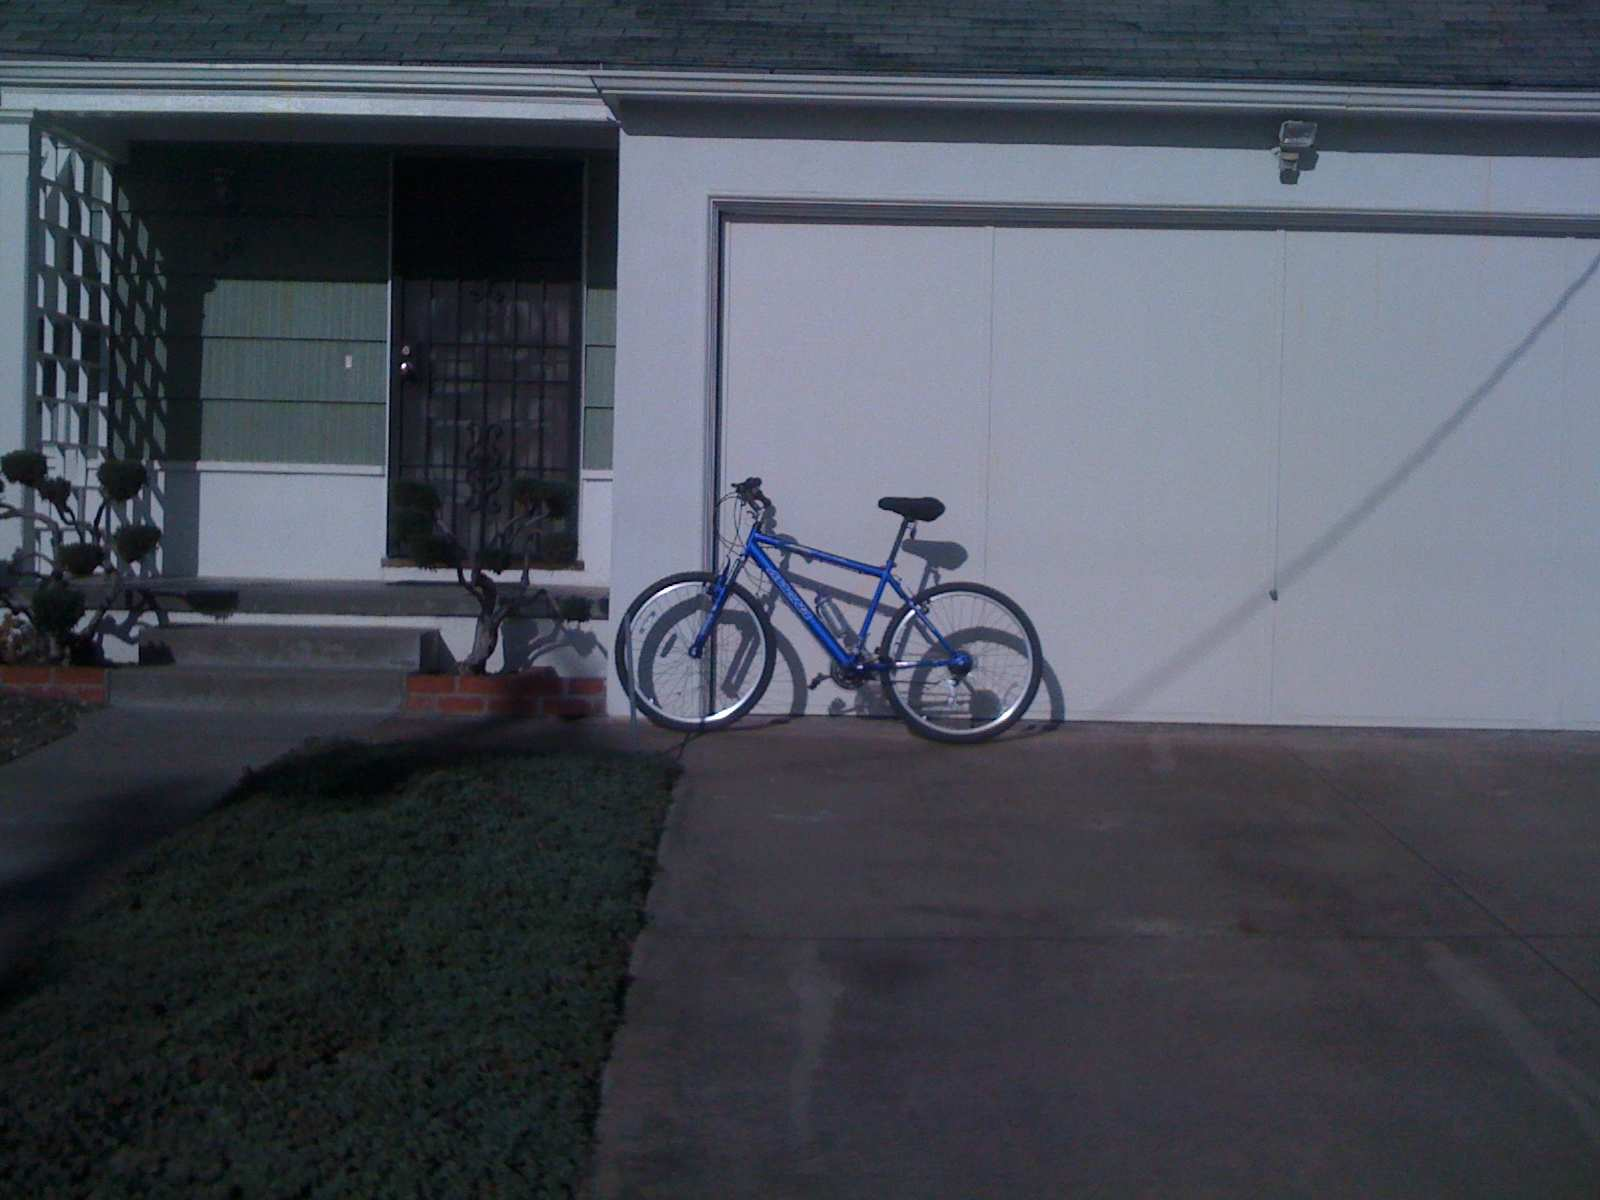 Figure 1: Photo of a bike taken with an iphone 3G and a corresponding Google Street View image based on the stored geocoordinates.